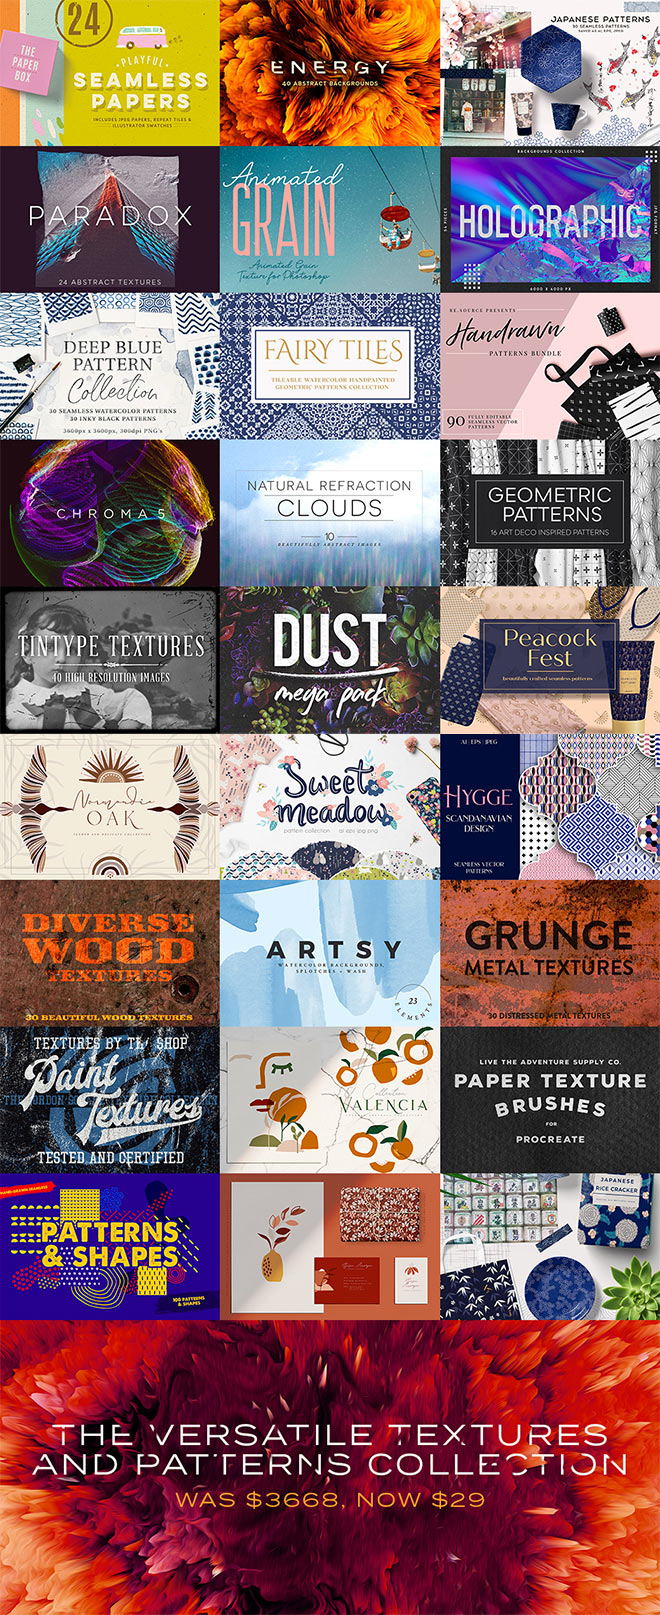 A Versatile Collection of Textures & Patterns to Cover Any Project